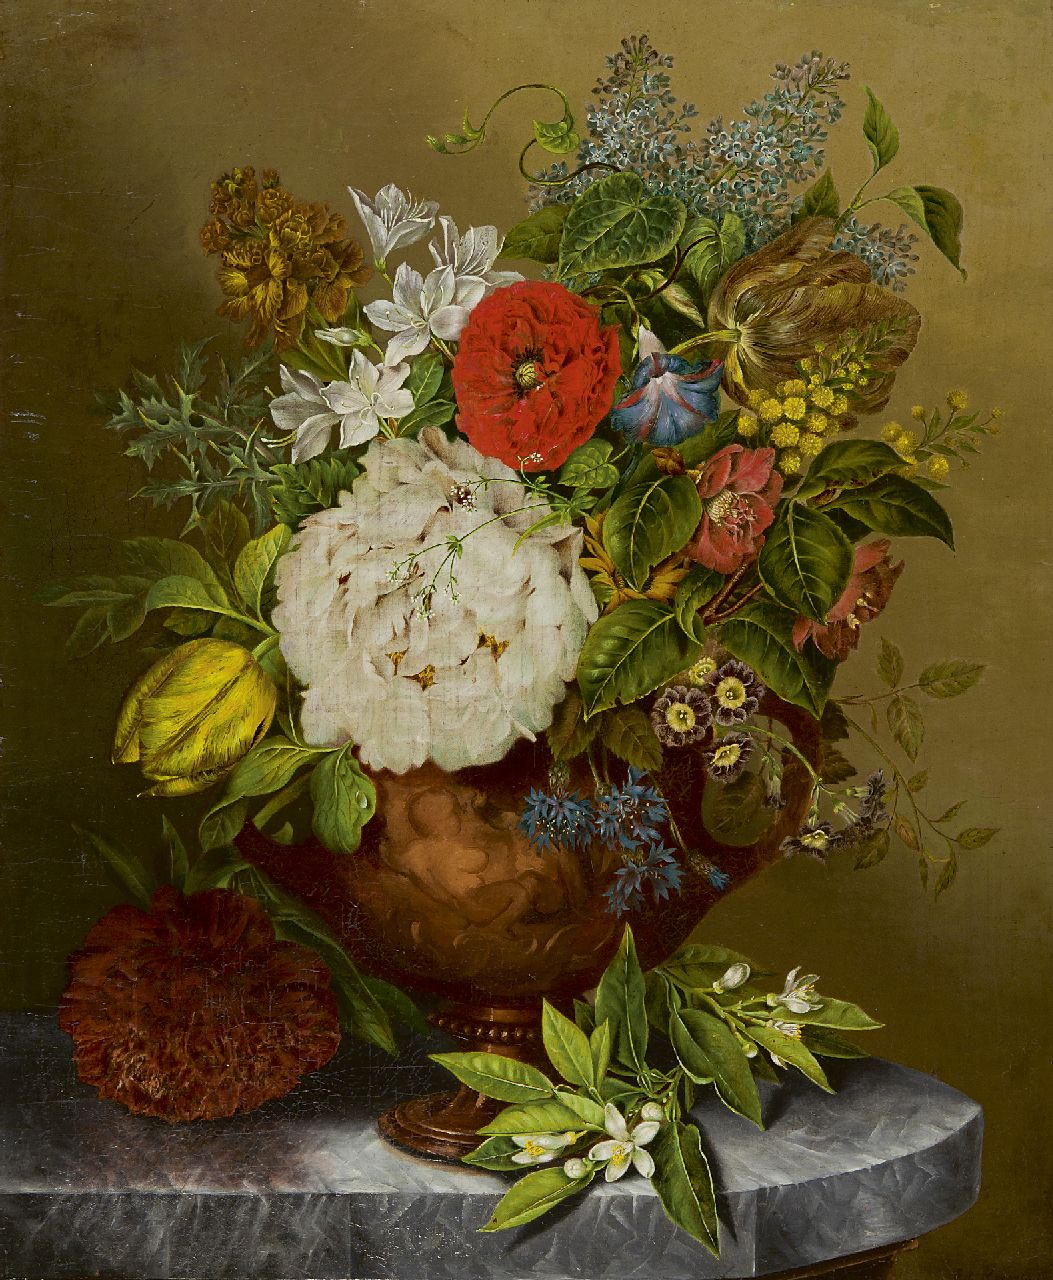 Elisabeth Iosetta Hoopstad | A flower still life in a terracotta vase, oil on canvas, 59.5 x 48.4 cm, signed l.r.